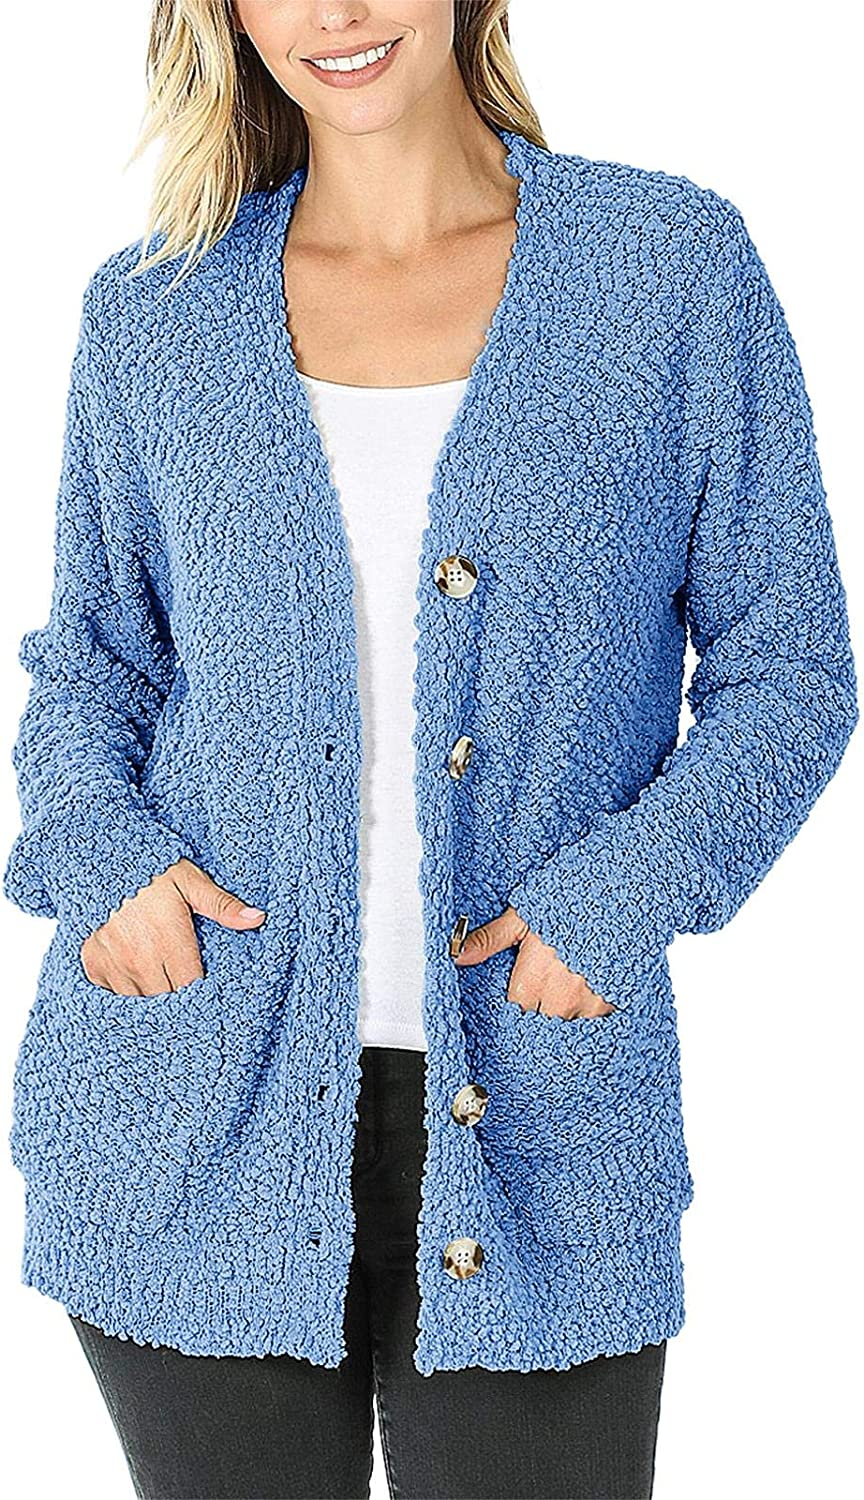 YeMgSiP Womens Popcorn Cardigan Sweaters Open Front Cardigans Button Loose Outerwear with Pockets Casual Outwear Sweater